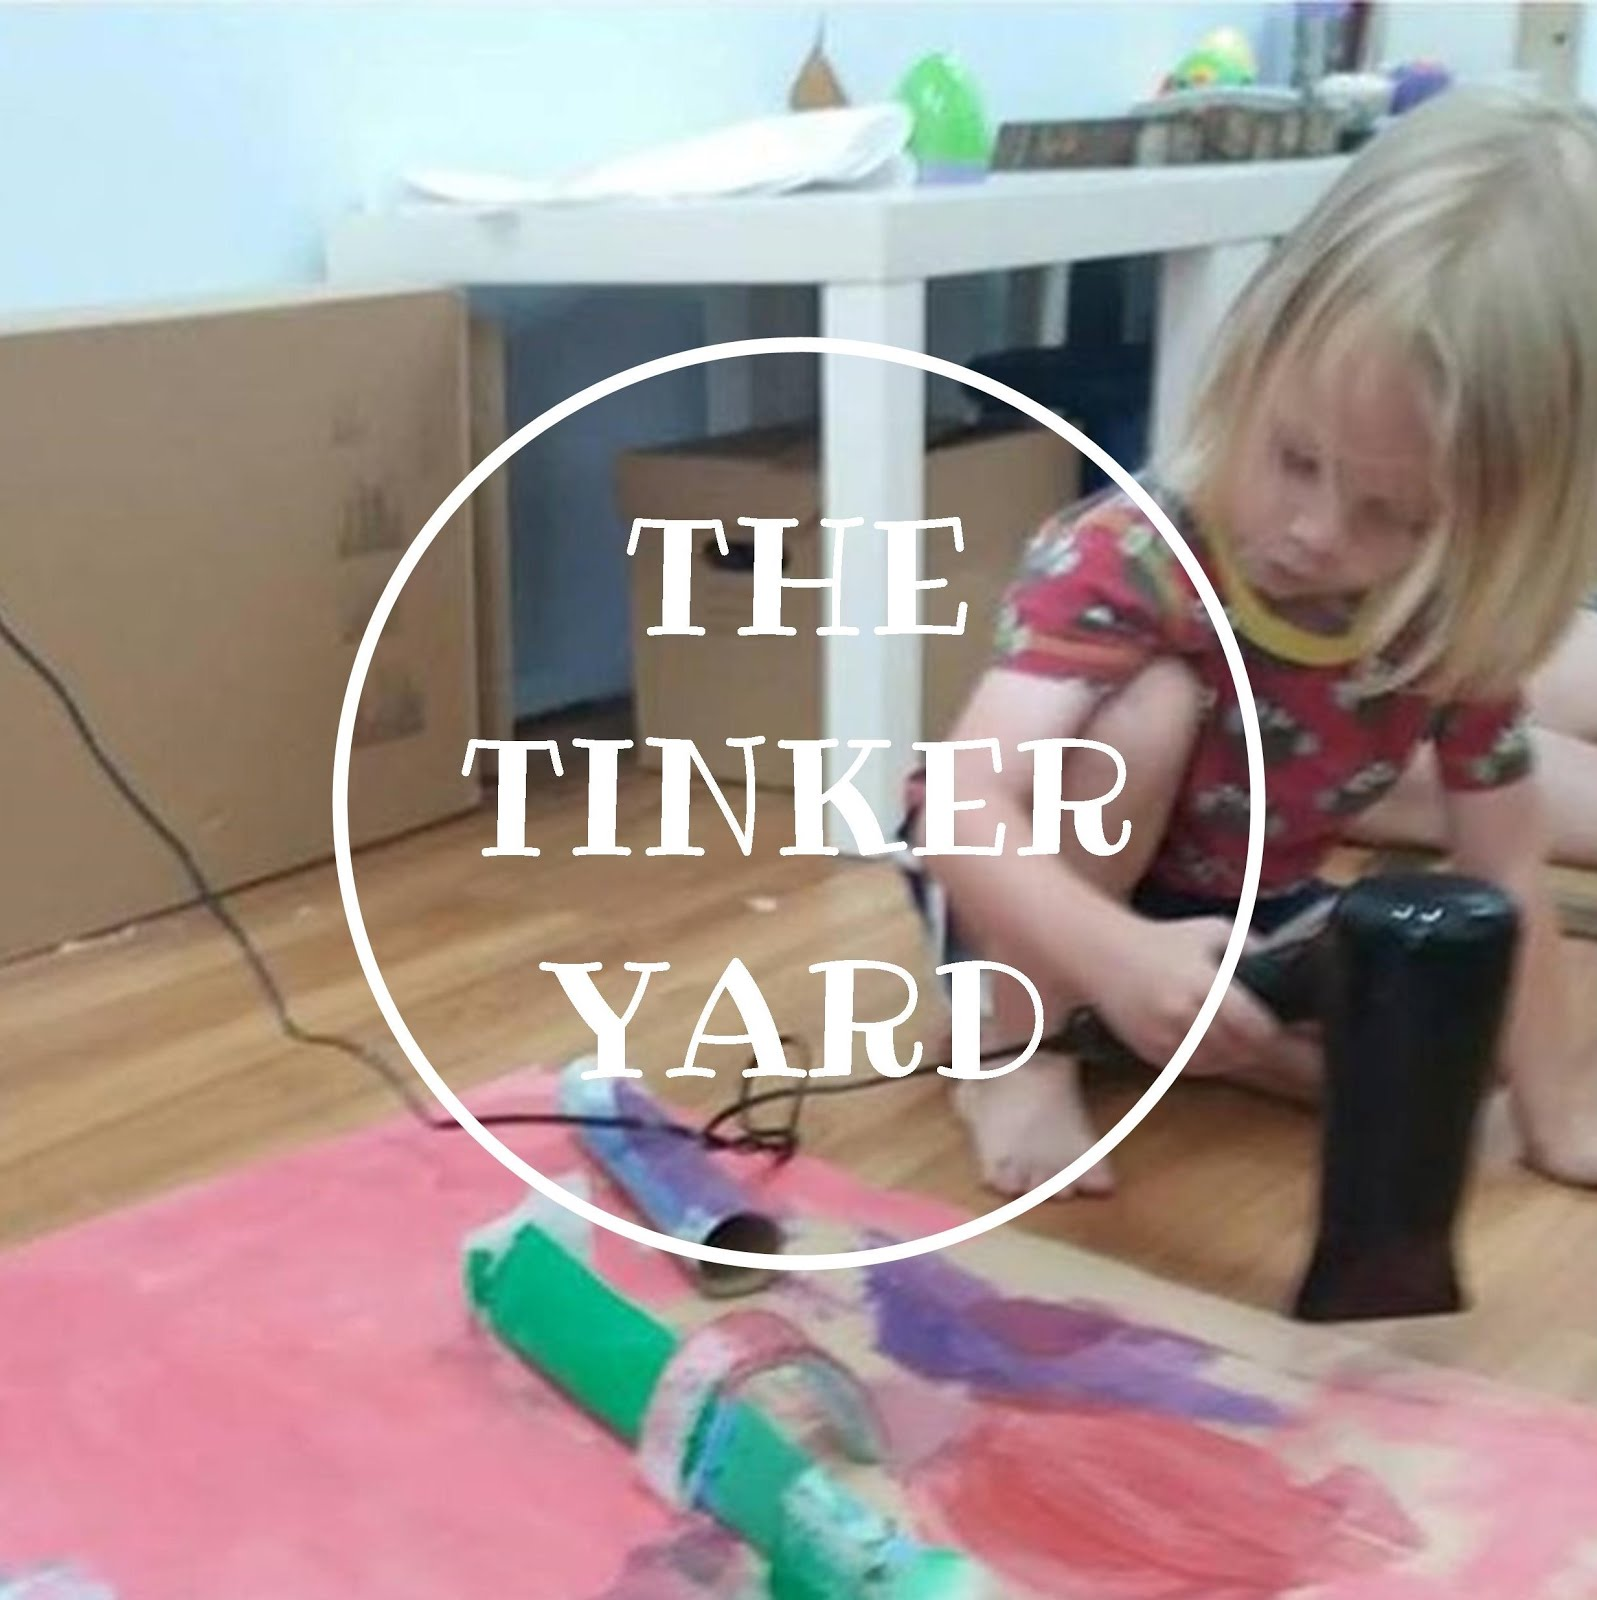 The Tinker Yard is getting a new webpage.